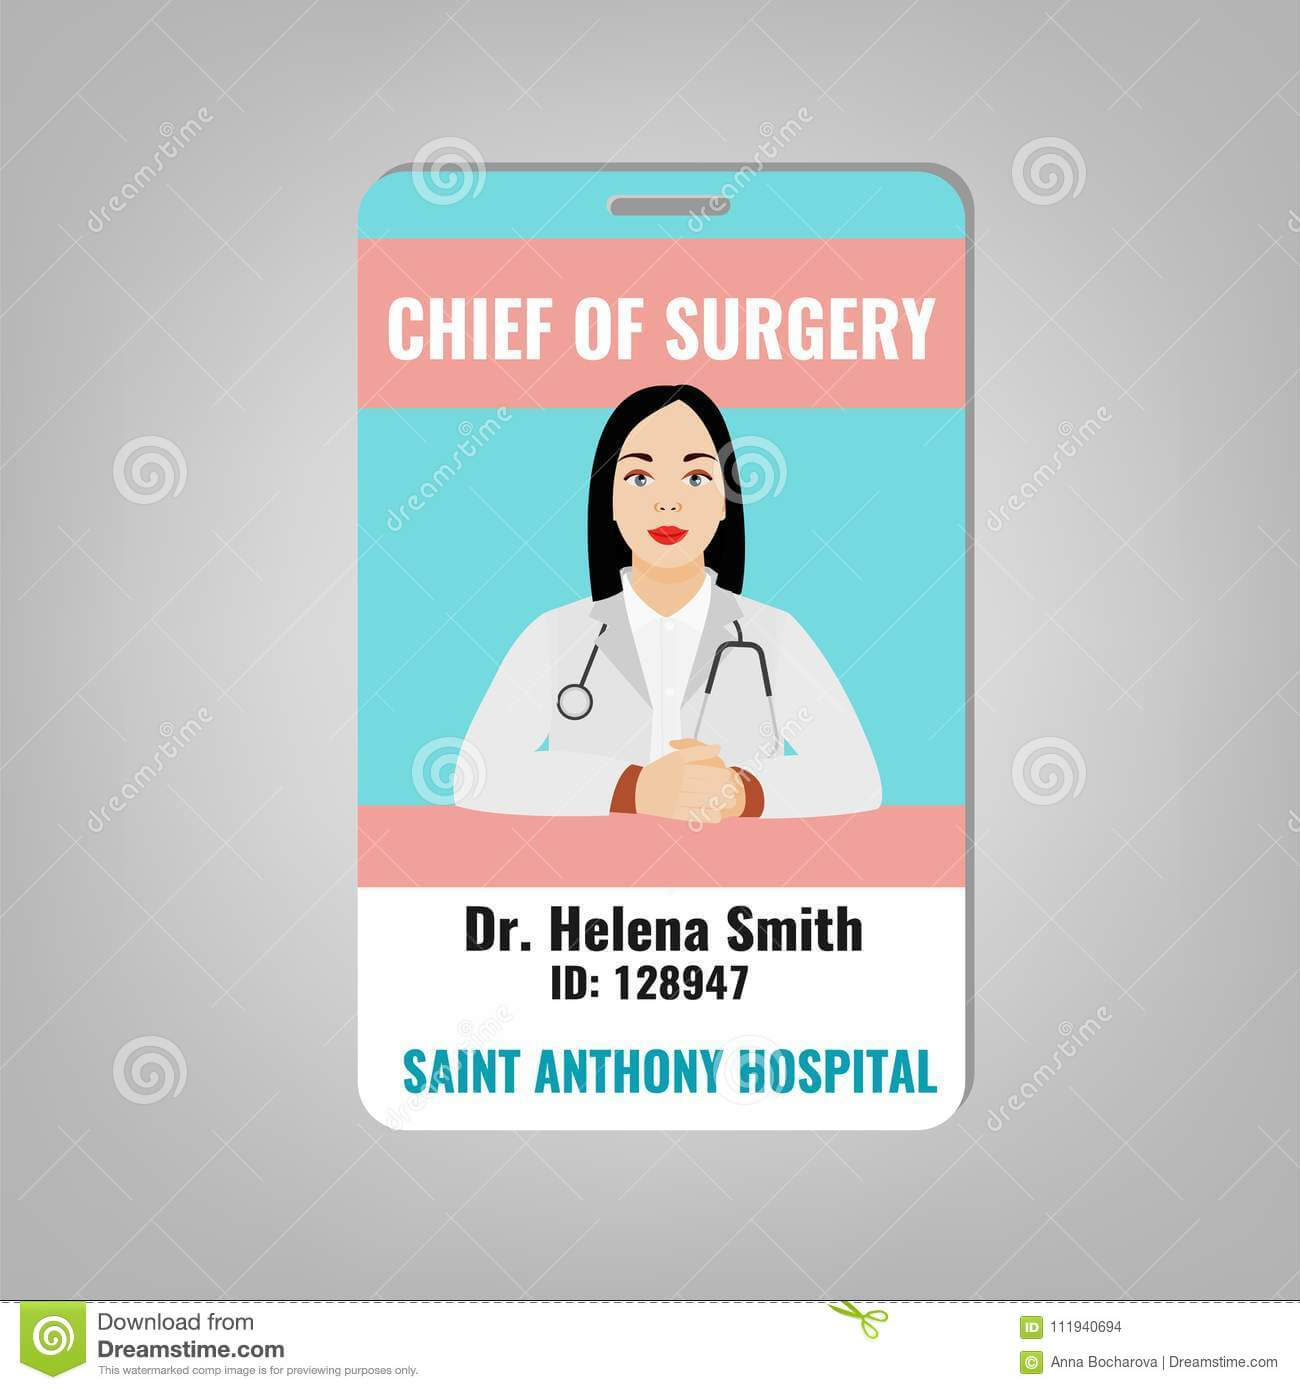 Doctor Id Card Stock Vector. Illustration Of Doctor - 111940694 within Doctor Id Card Template